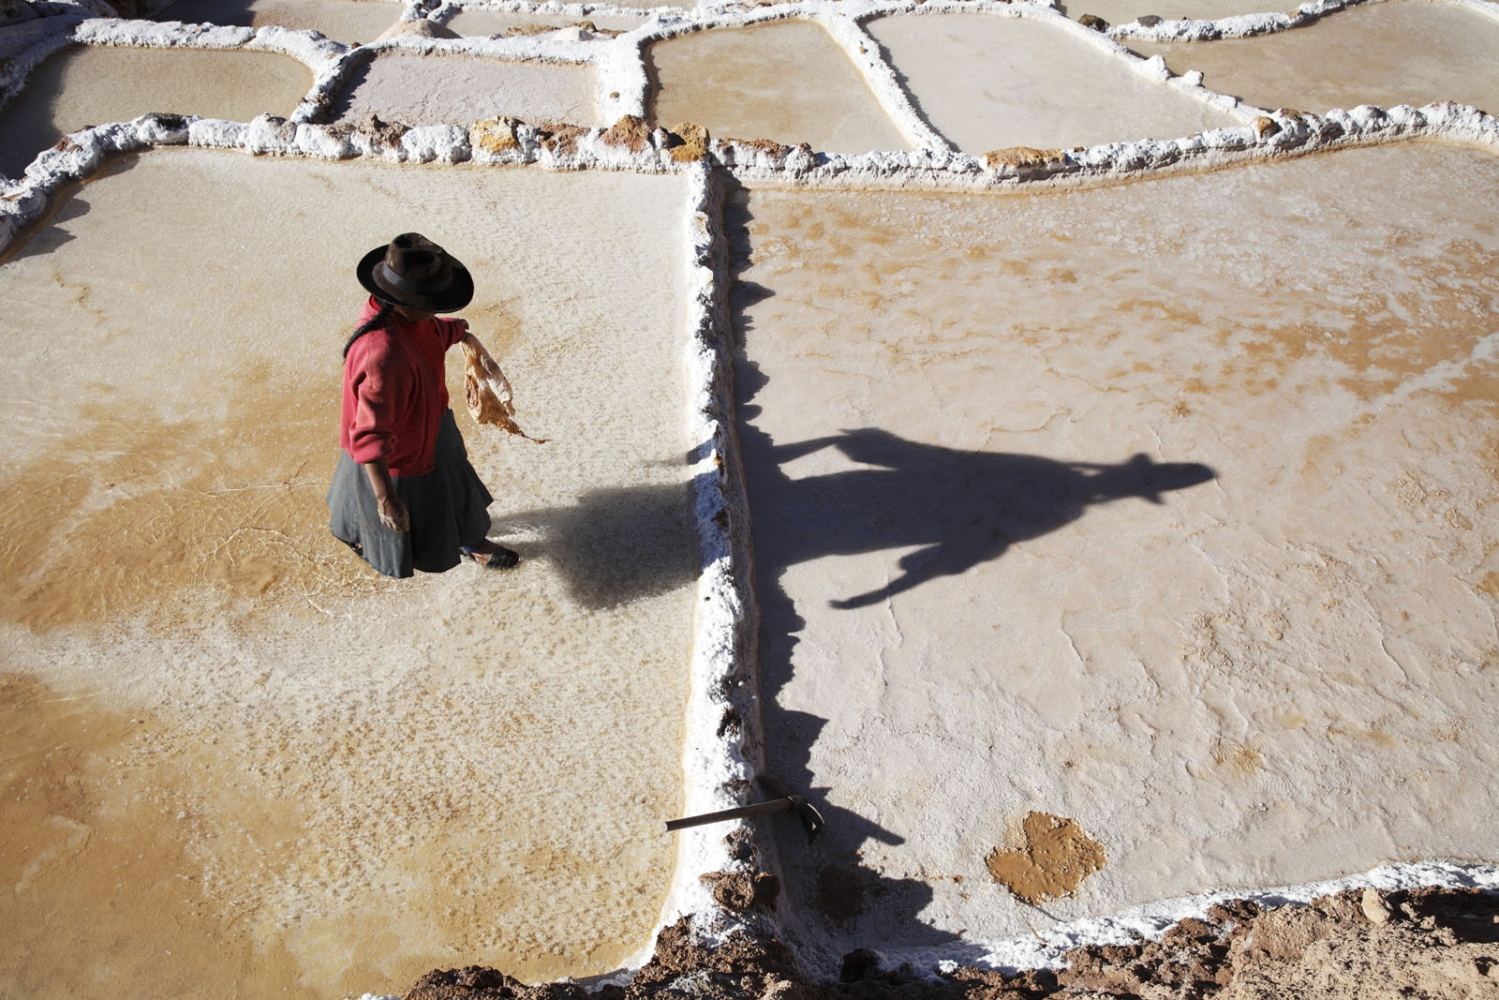 A Quechuan lady walks across the ancient salt pans on Salinas de Maras casting a long shadow. Built by the Inca's this UNESCO status site is still used to produce salt by members of the Maras community. Maras, Peru.